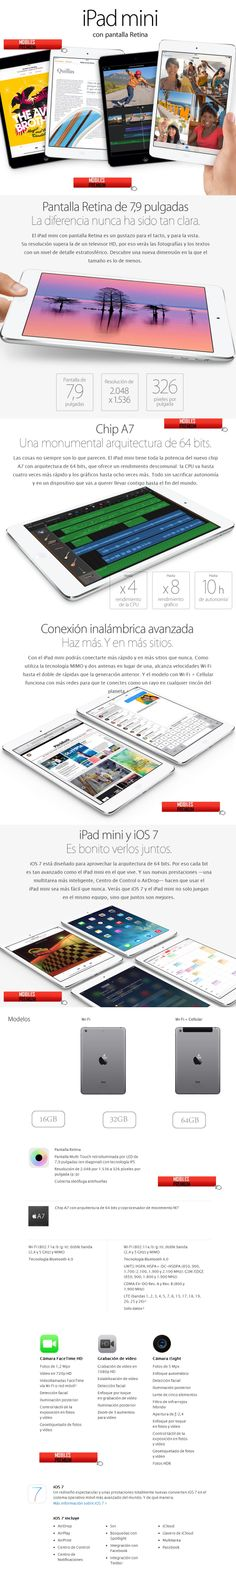 Comprar ipad mini 2 original 16gb argentina